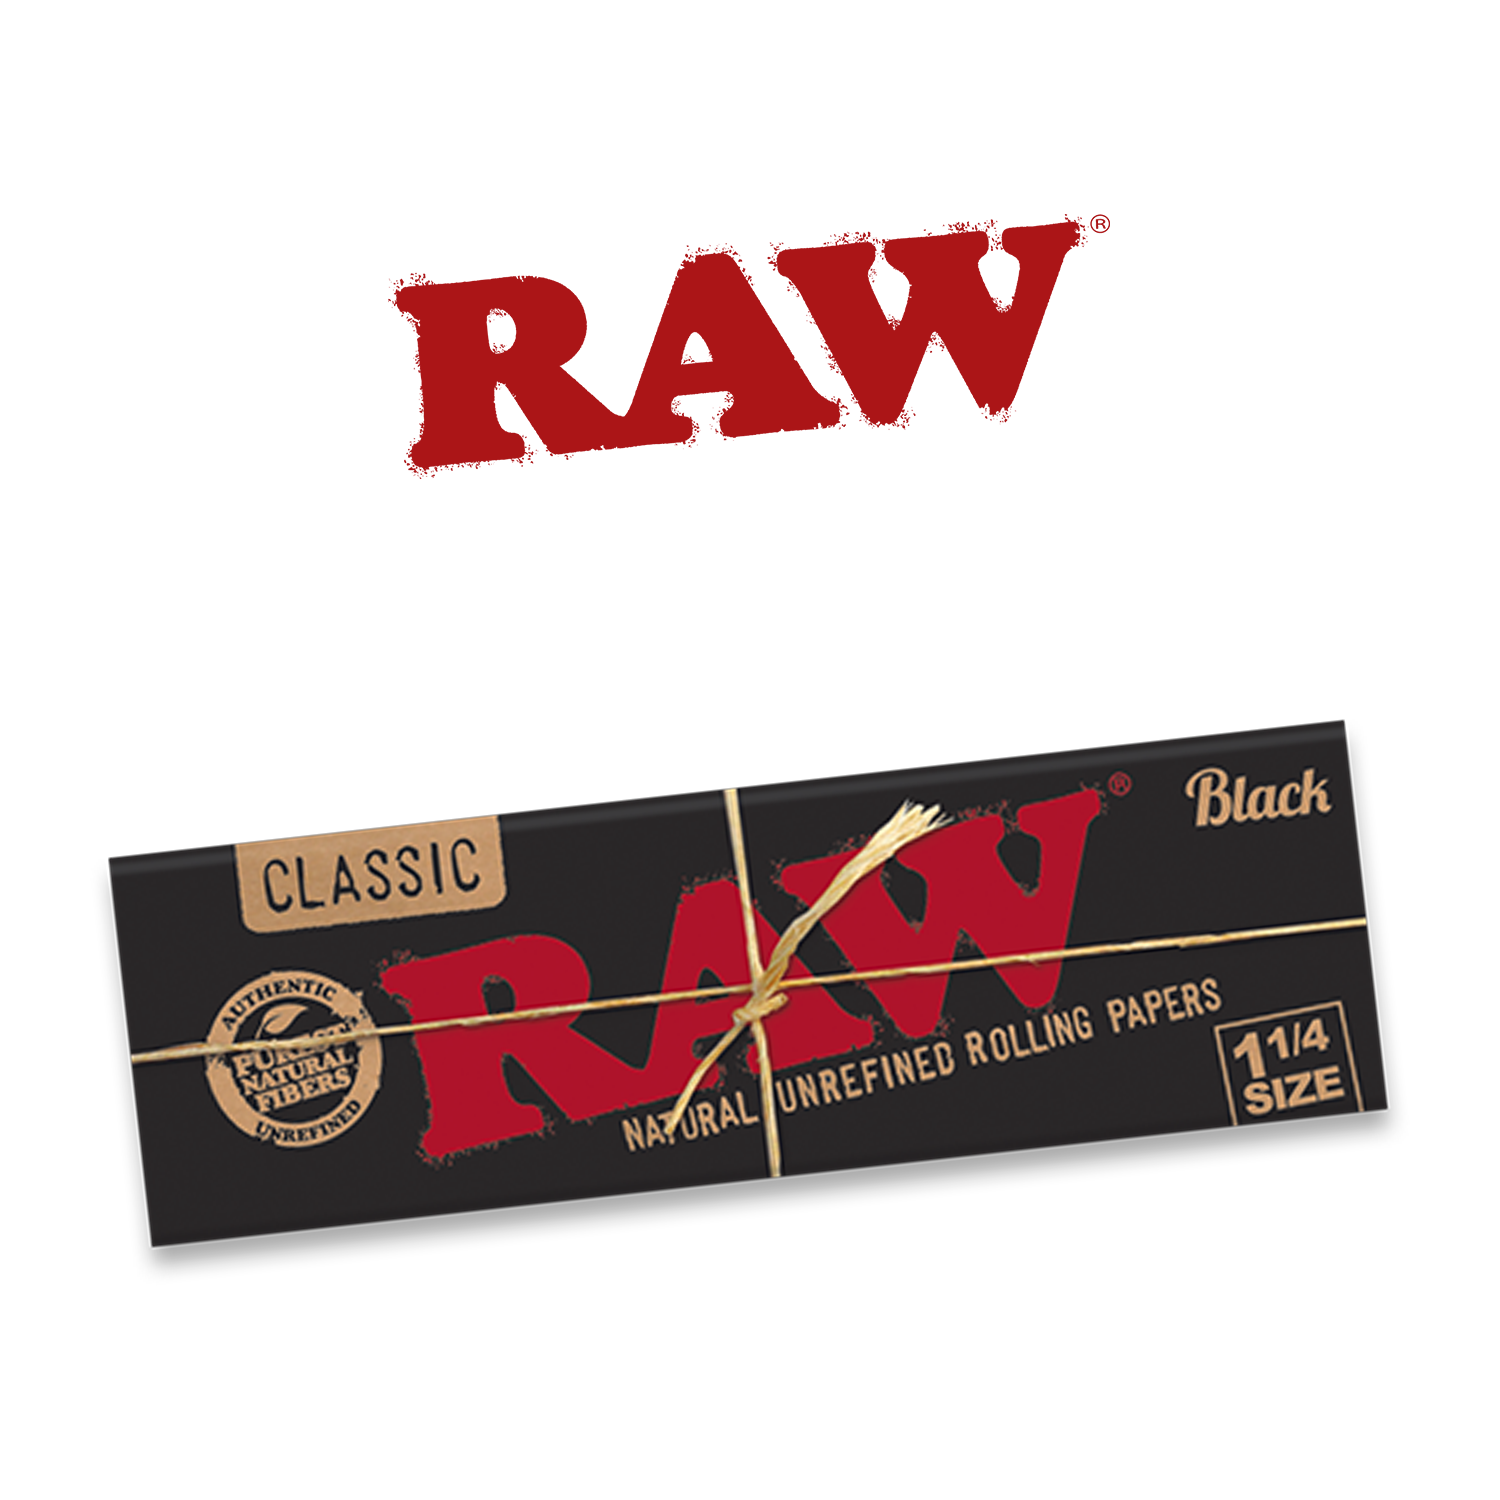 RAW Products